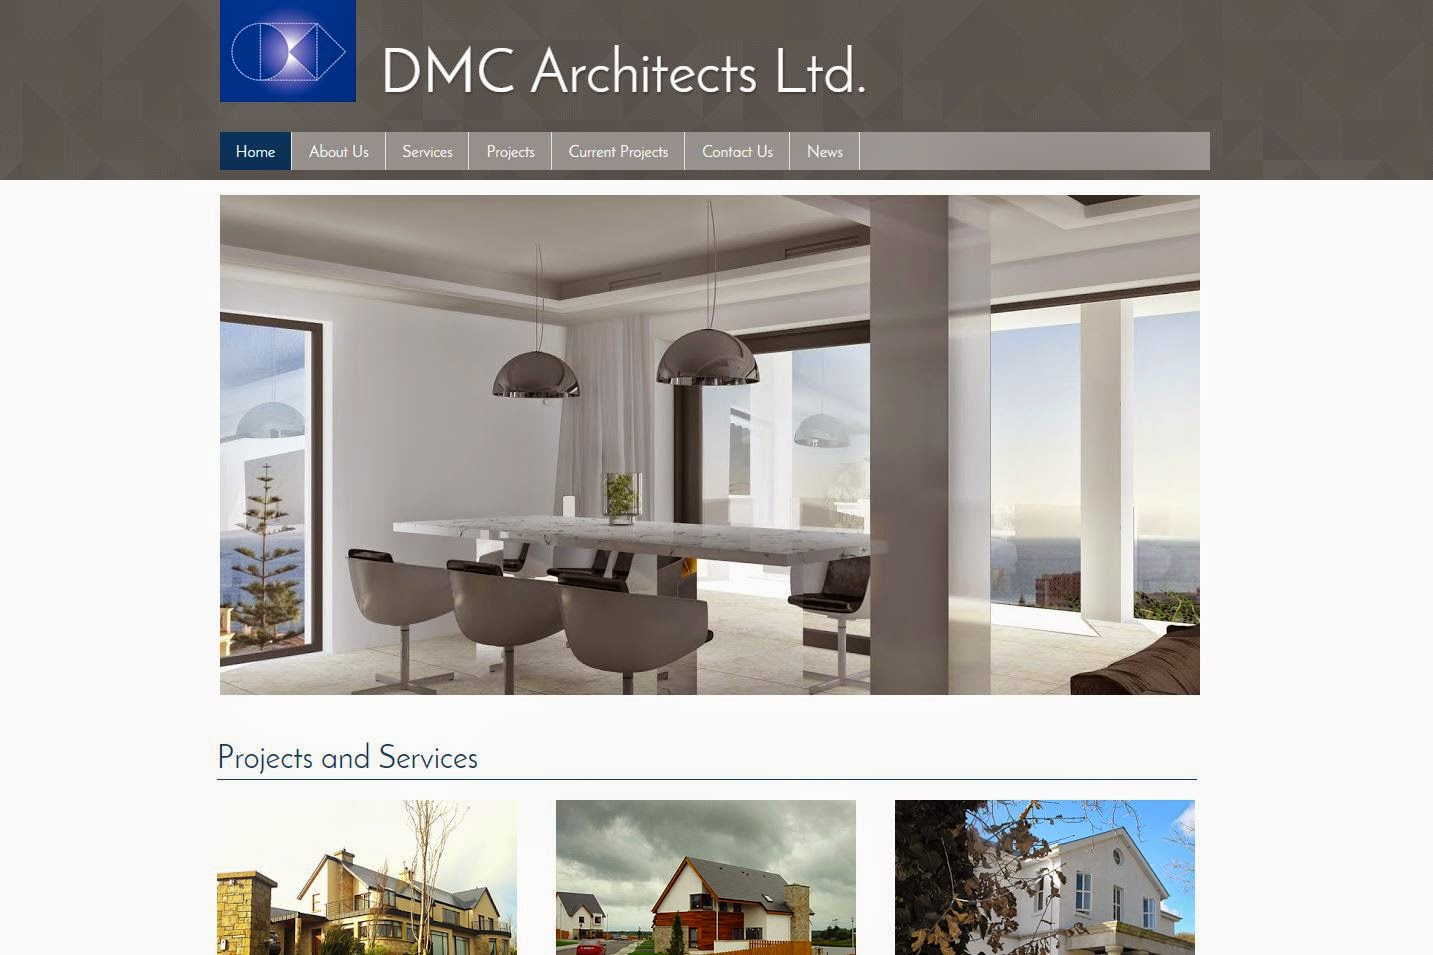 DMC Architects Website